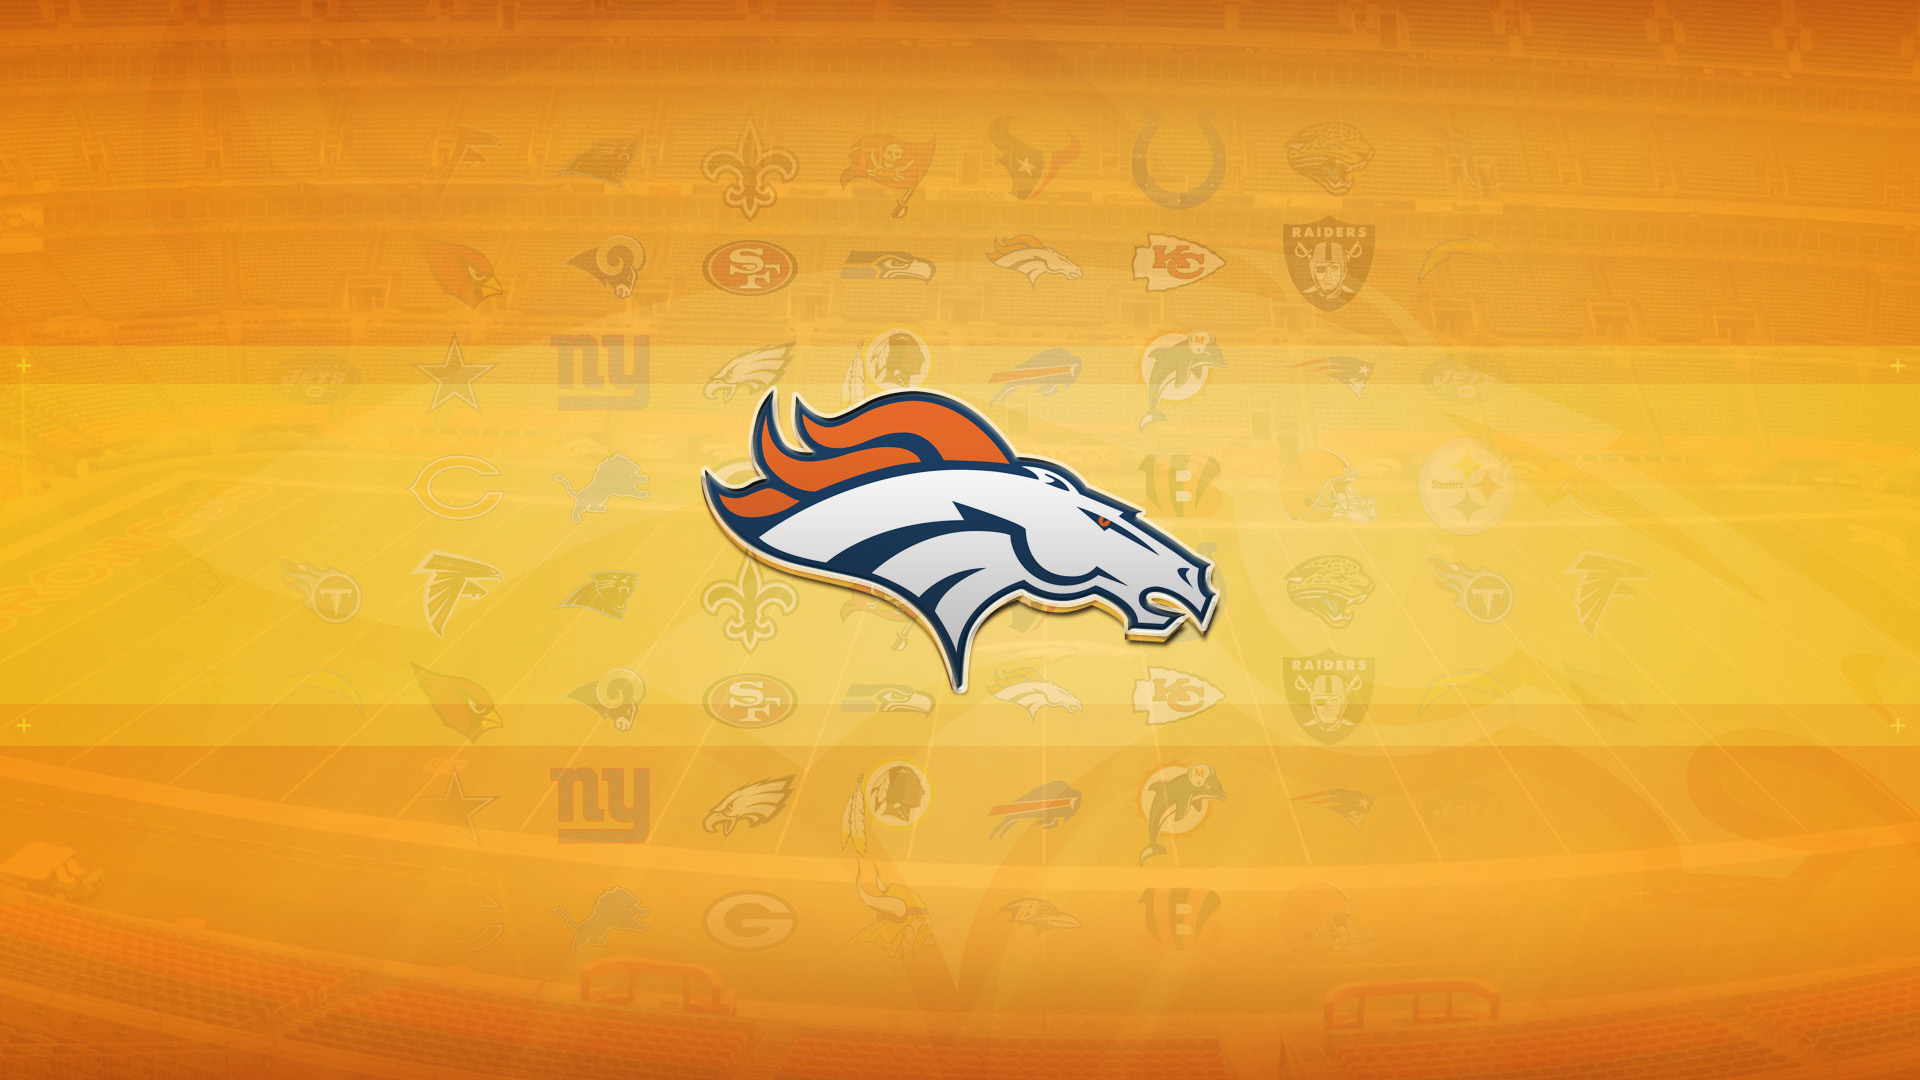 Denver Broncos Logos 19201080 Digital Citizen